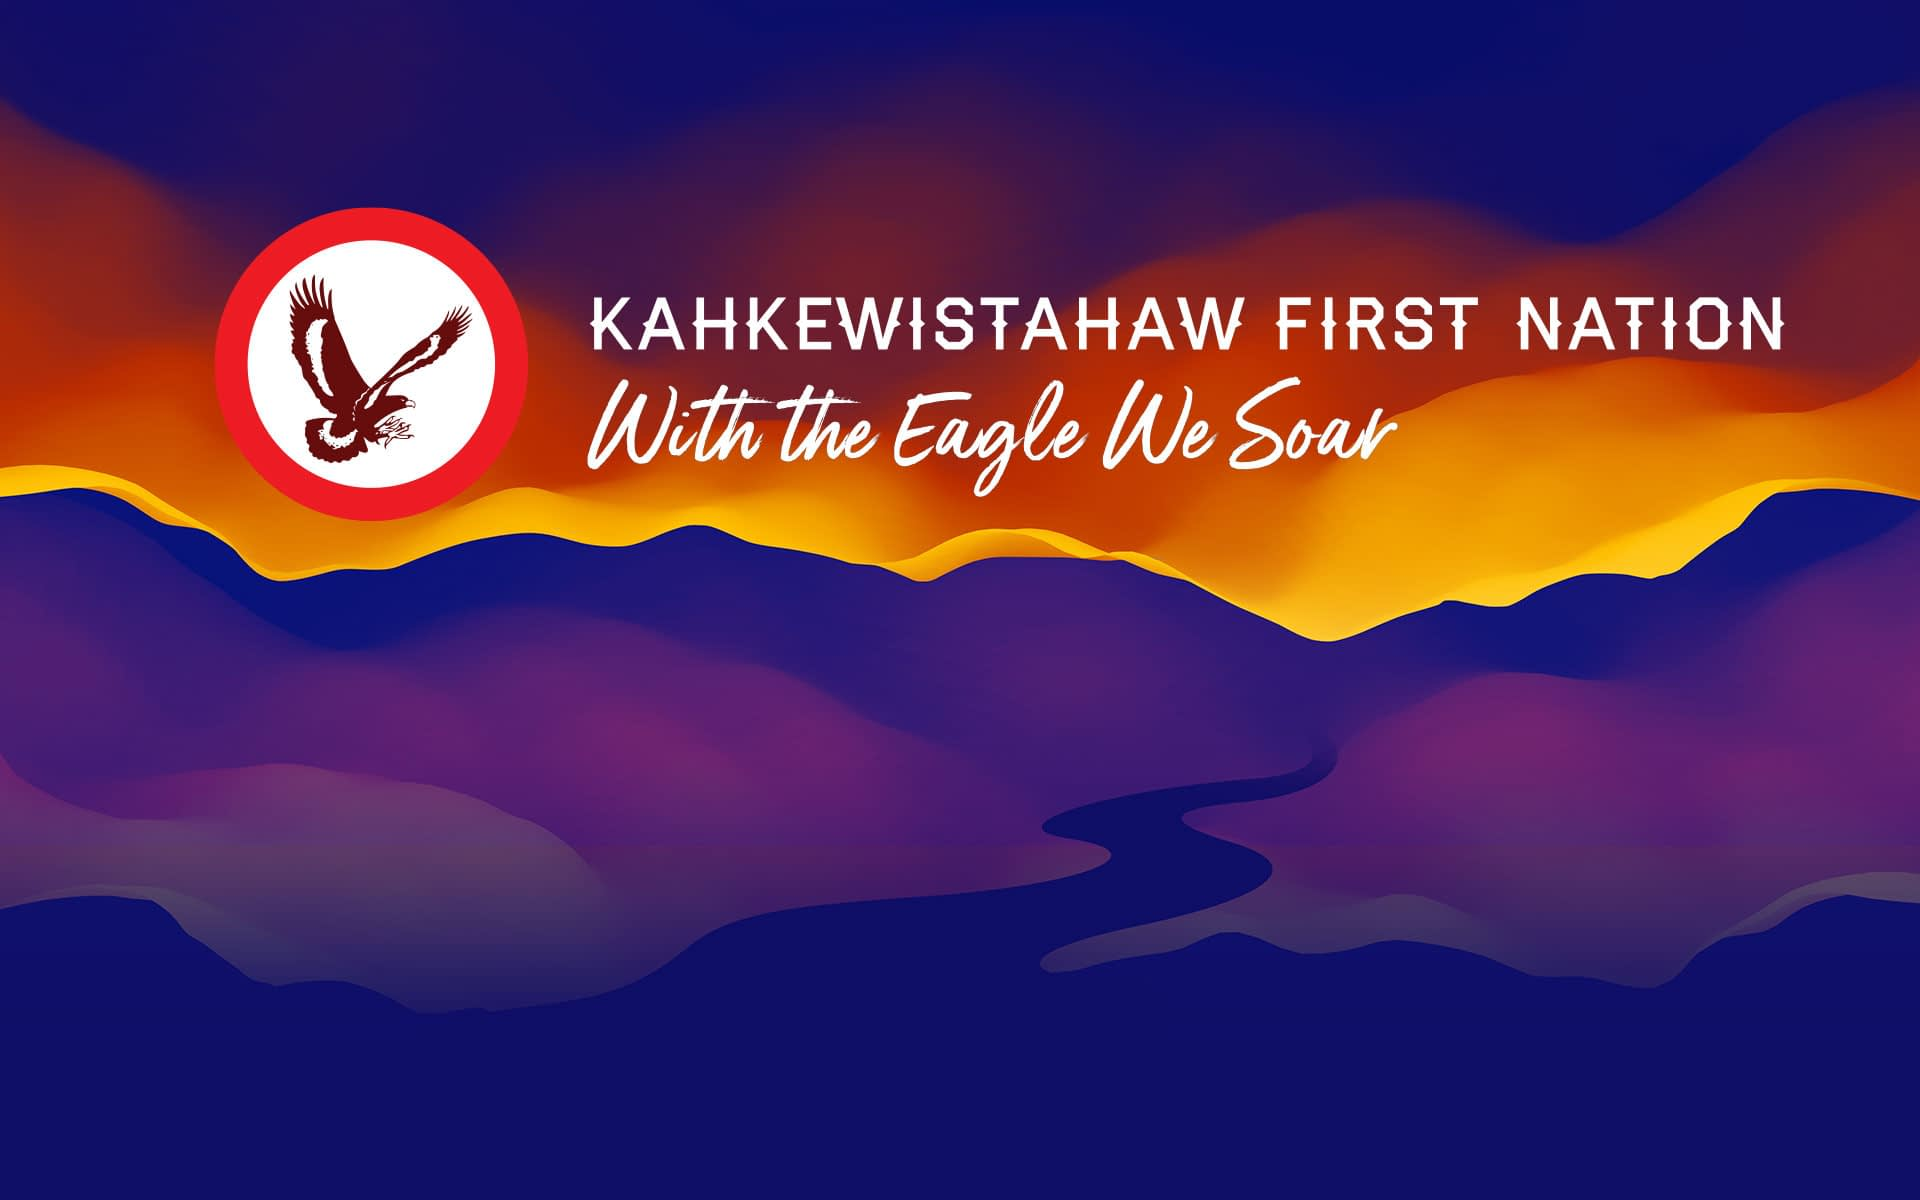 Kahkewistahaw First Nation